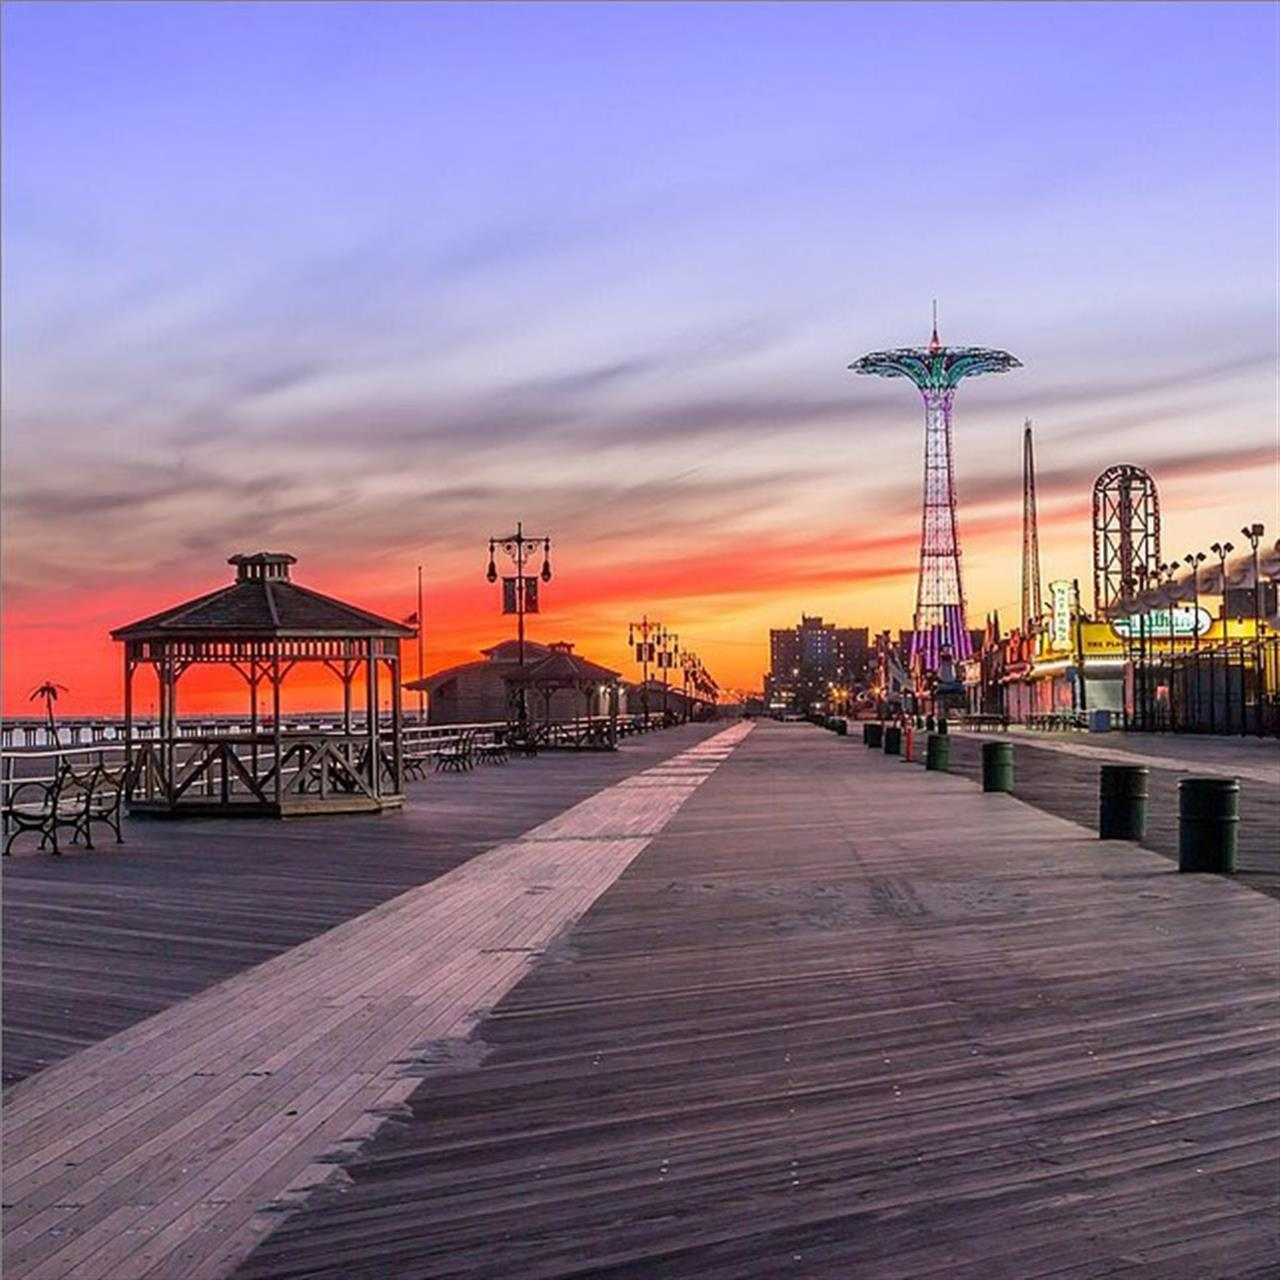 The #coneyisland sky painted with colorful hues! (Photo from @finestgearnyc)